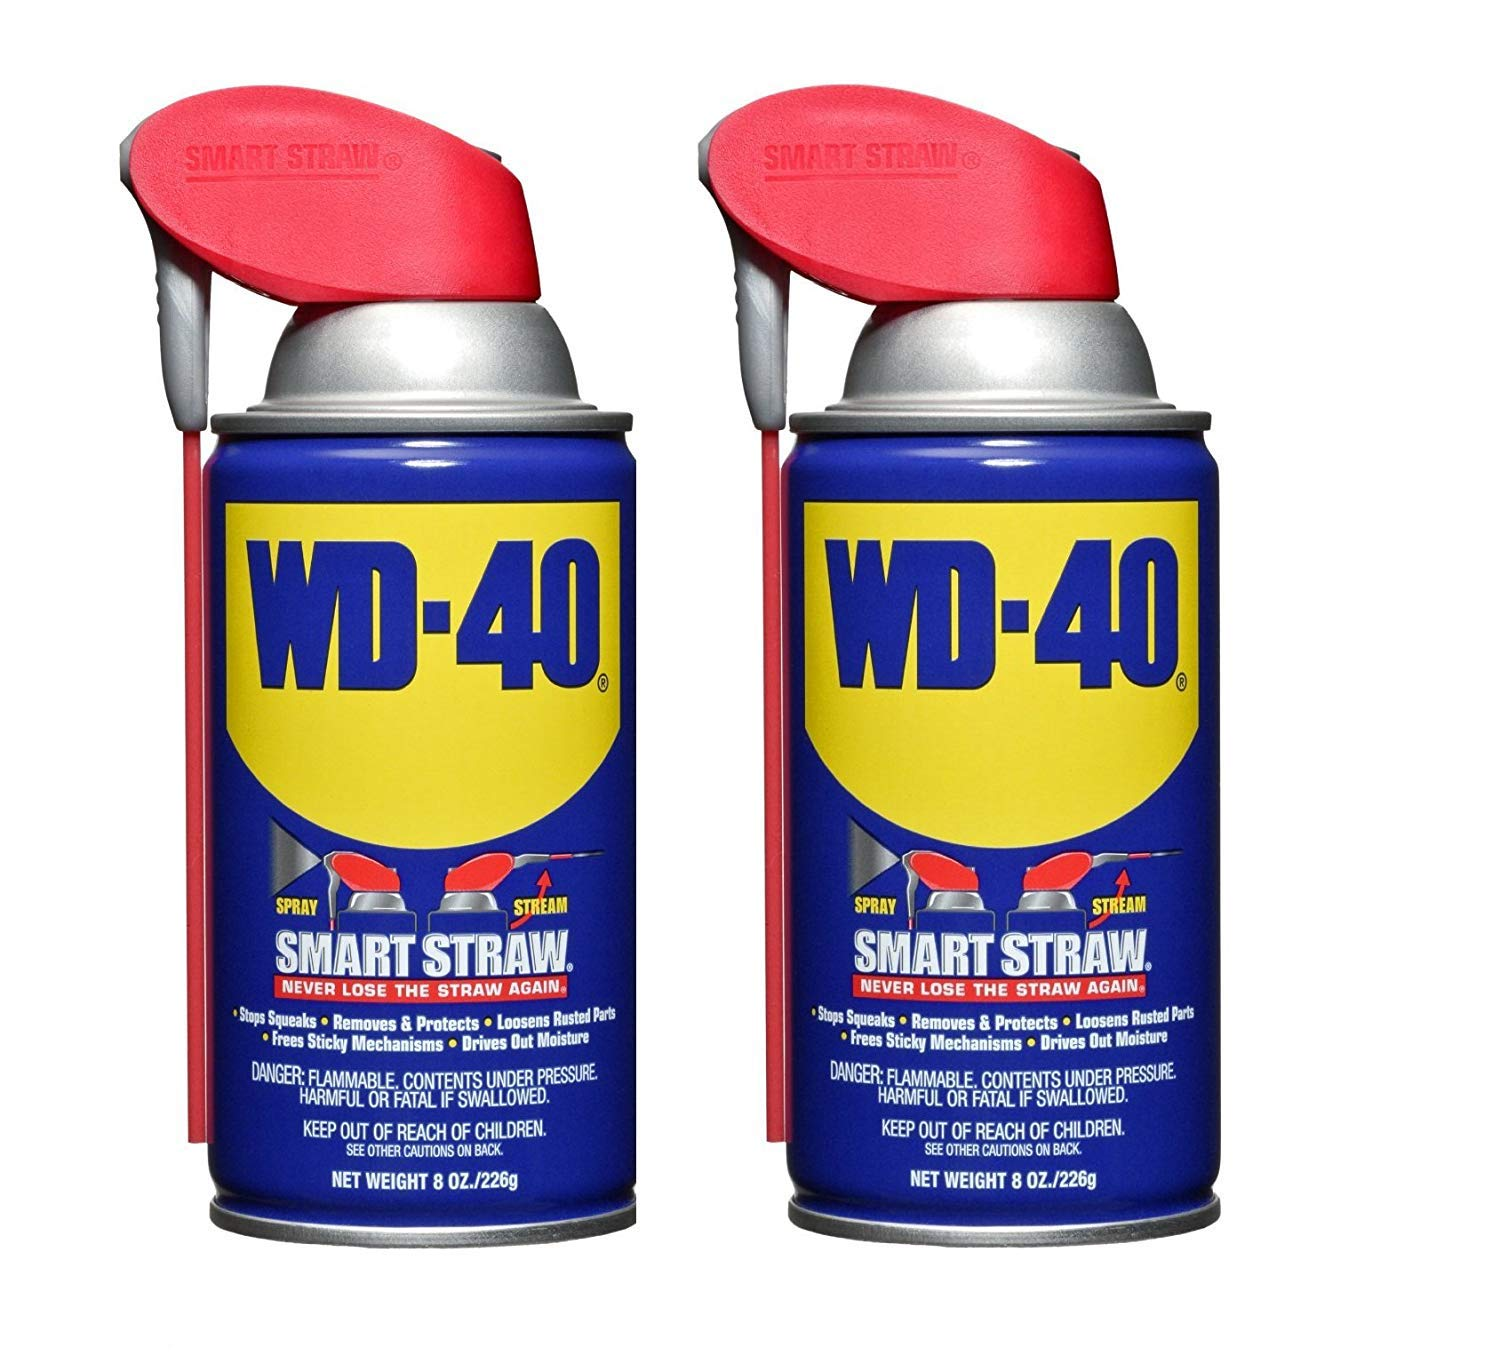 WD-40 110057 Multi-Use Product Spray with Smart Straw, 8 oz. (Pack of 2) by WD-40 Company